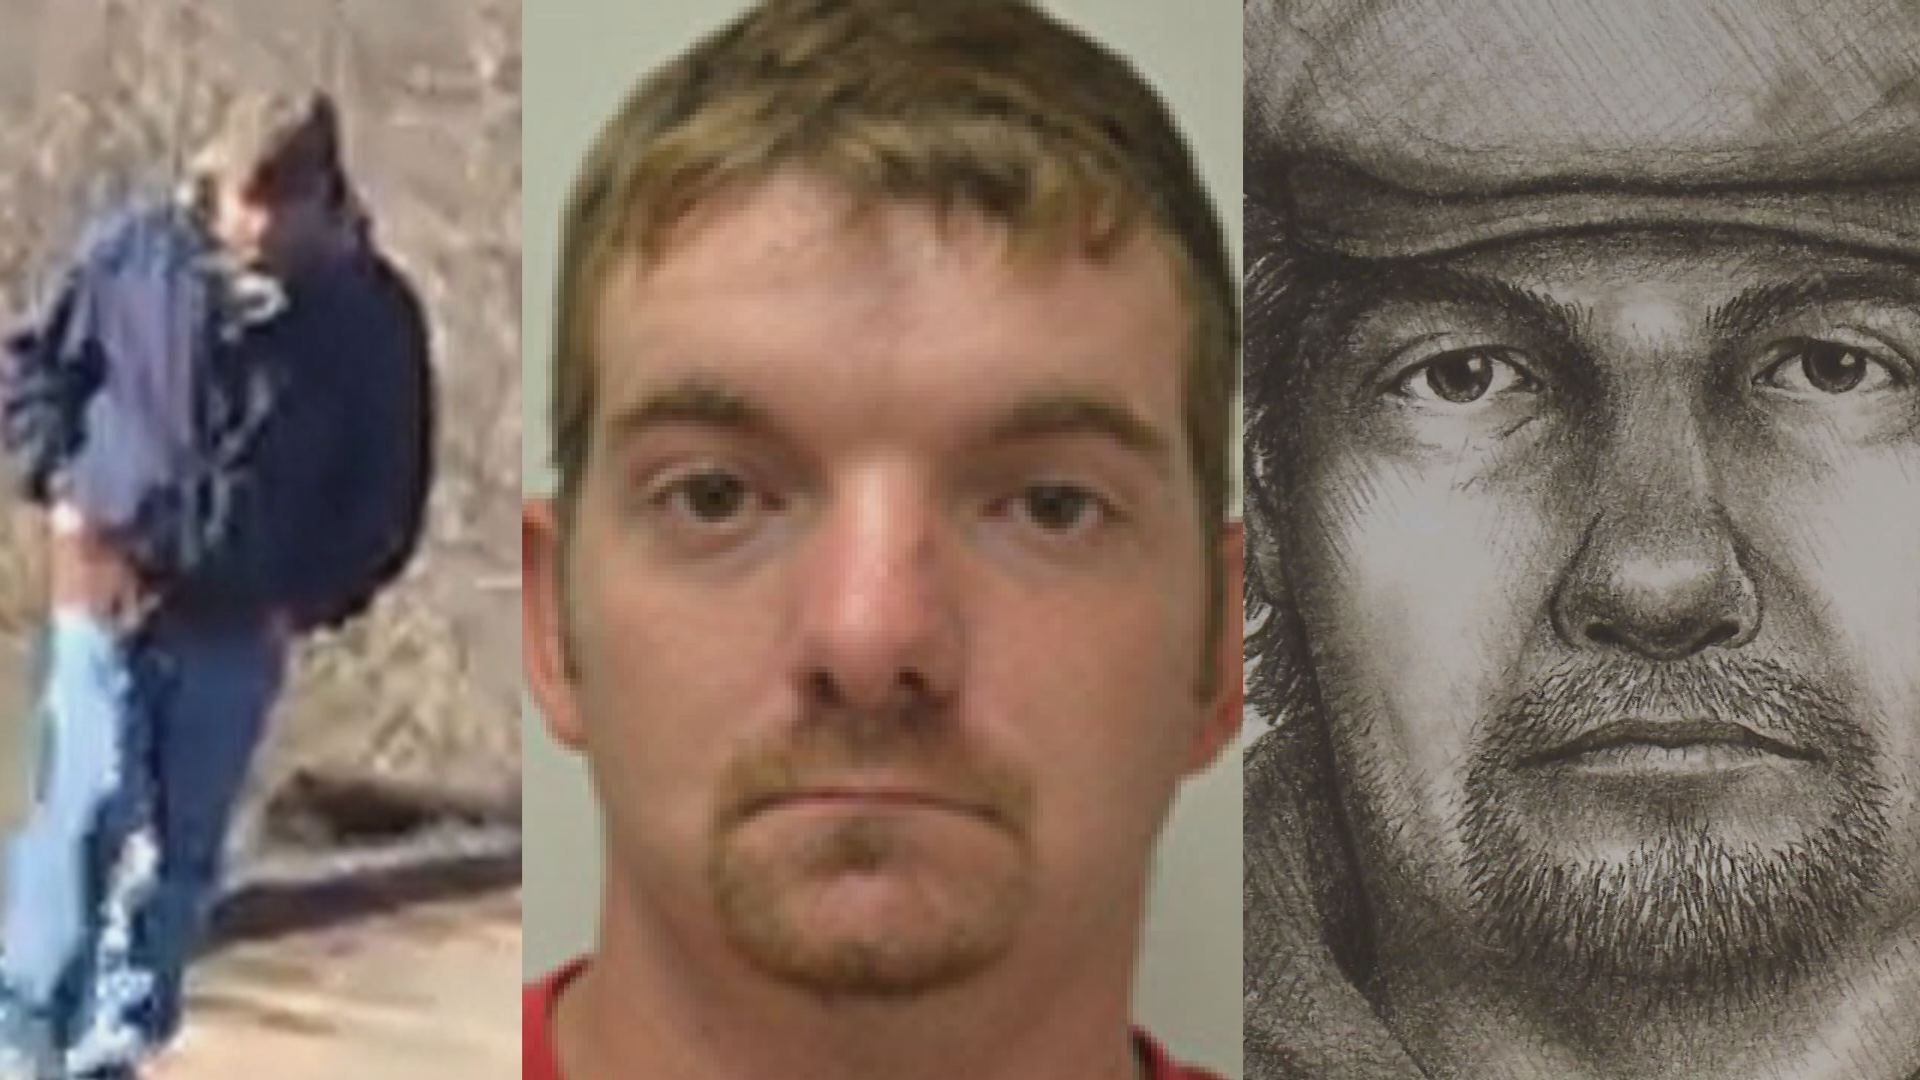 Person of interest' in Delphi case was in 2 Indiana jails